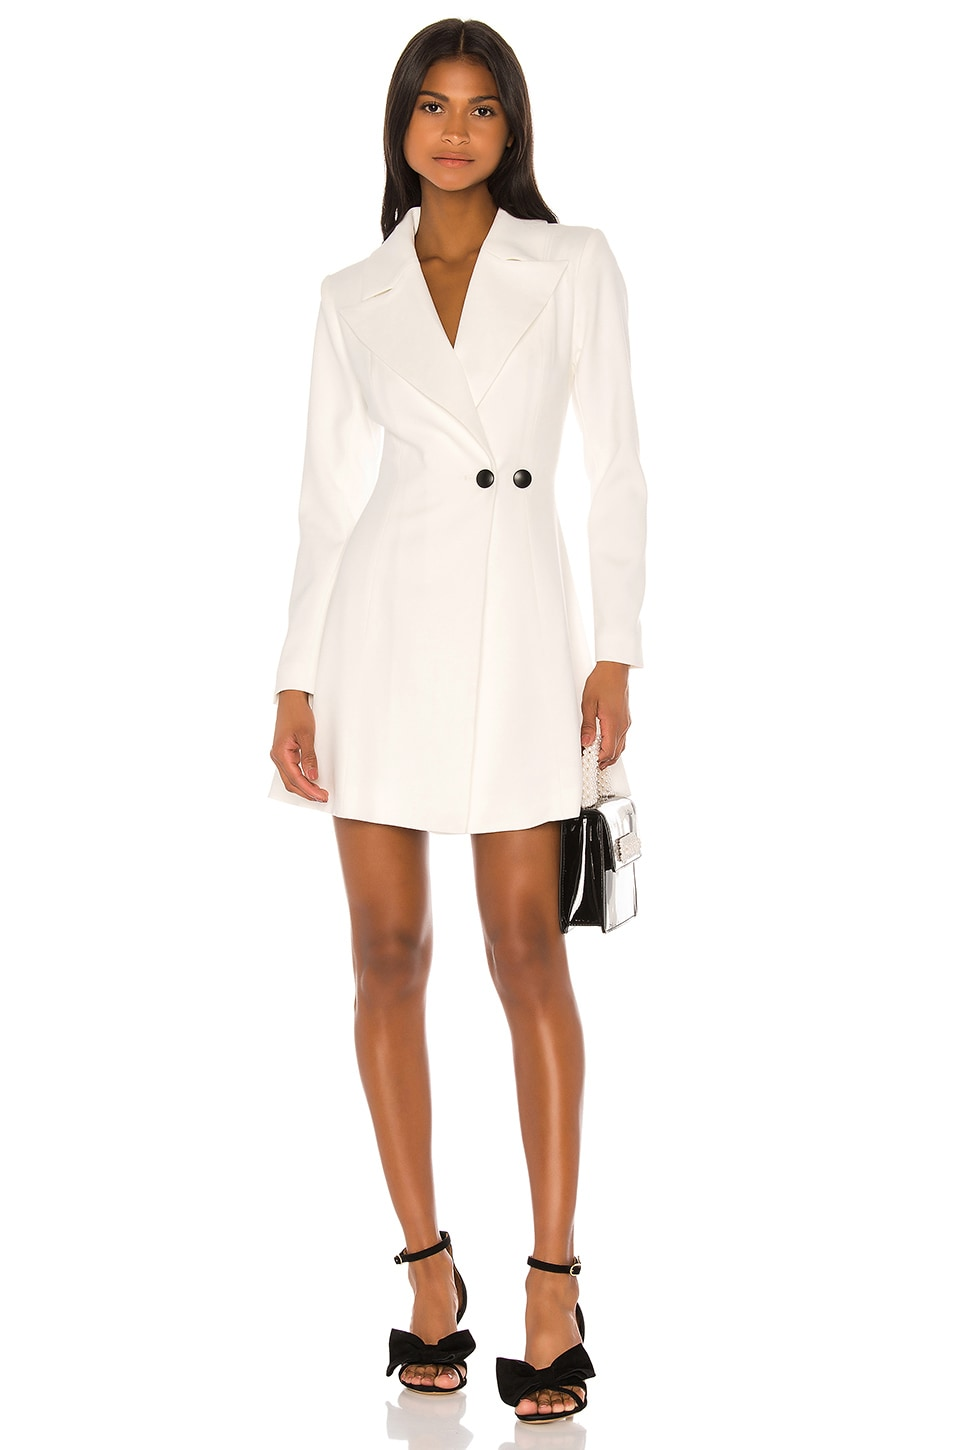 Atoir Yours To Keep Blazer Dress in Ivory